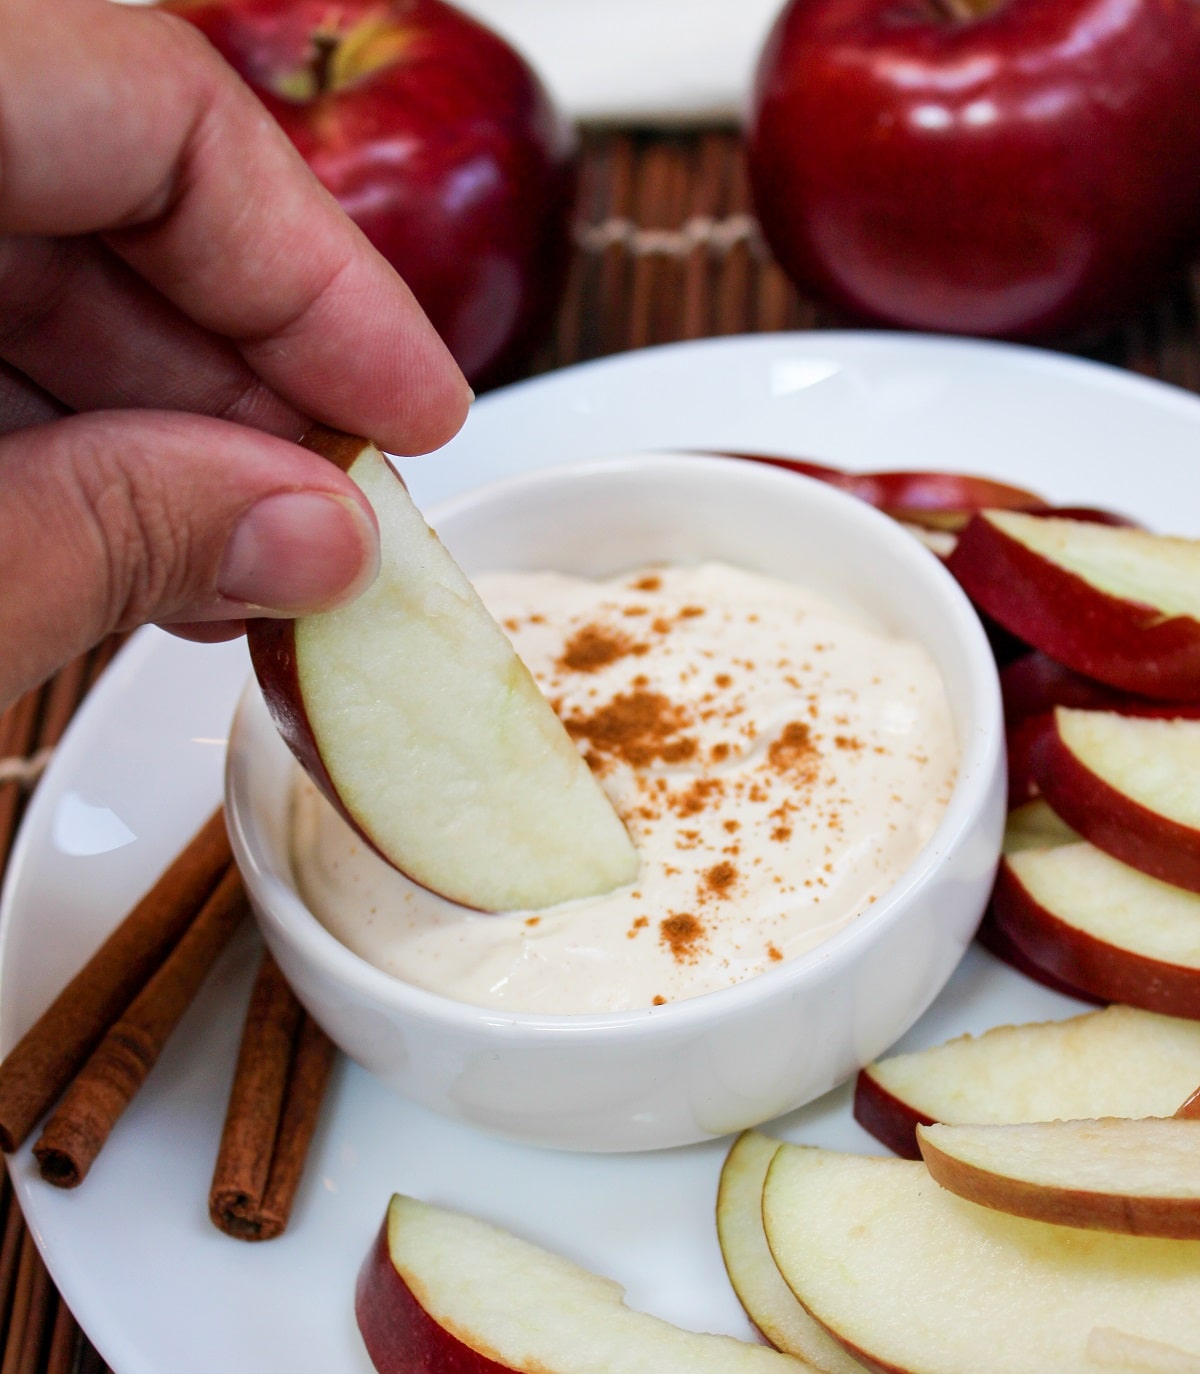 apple cider dip in a bowl with sliced apples and an apple dipped into the dip